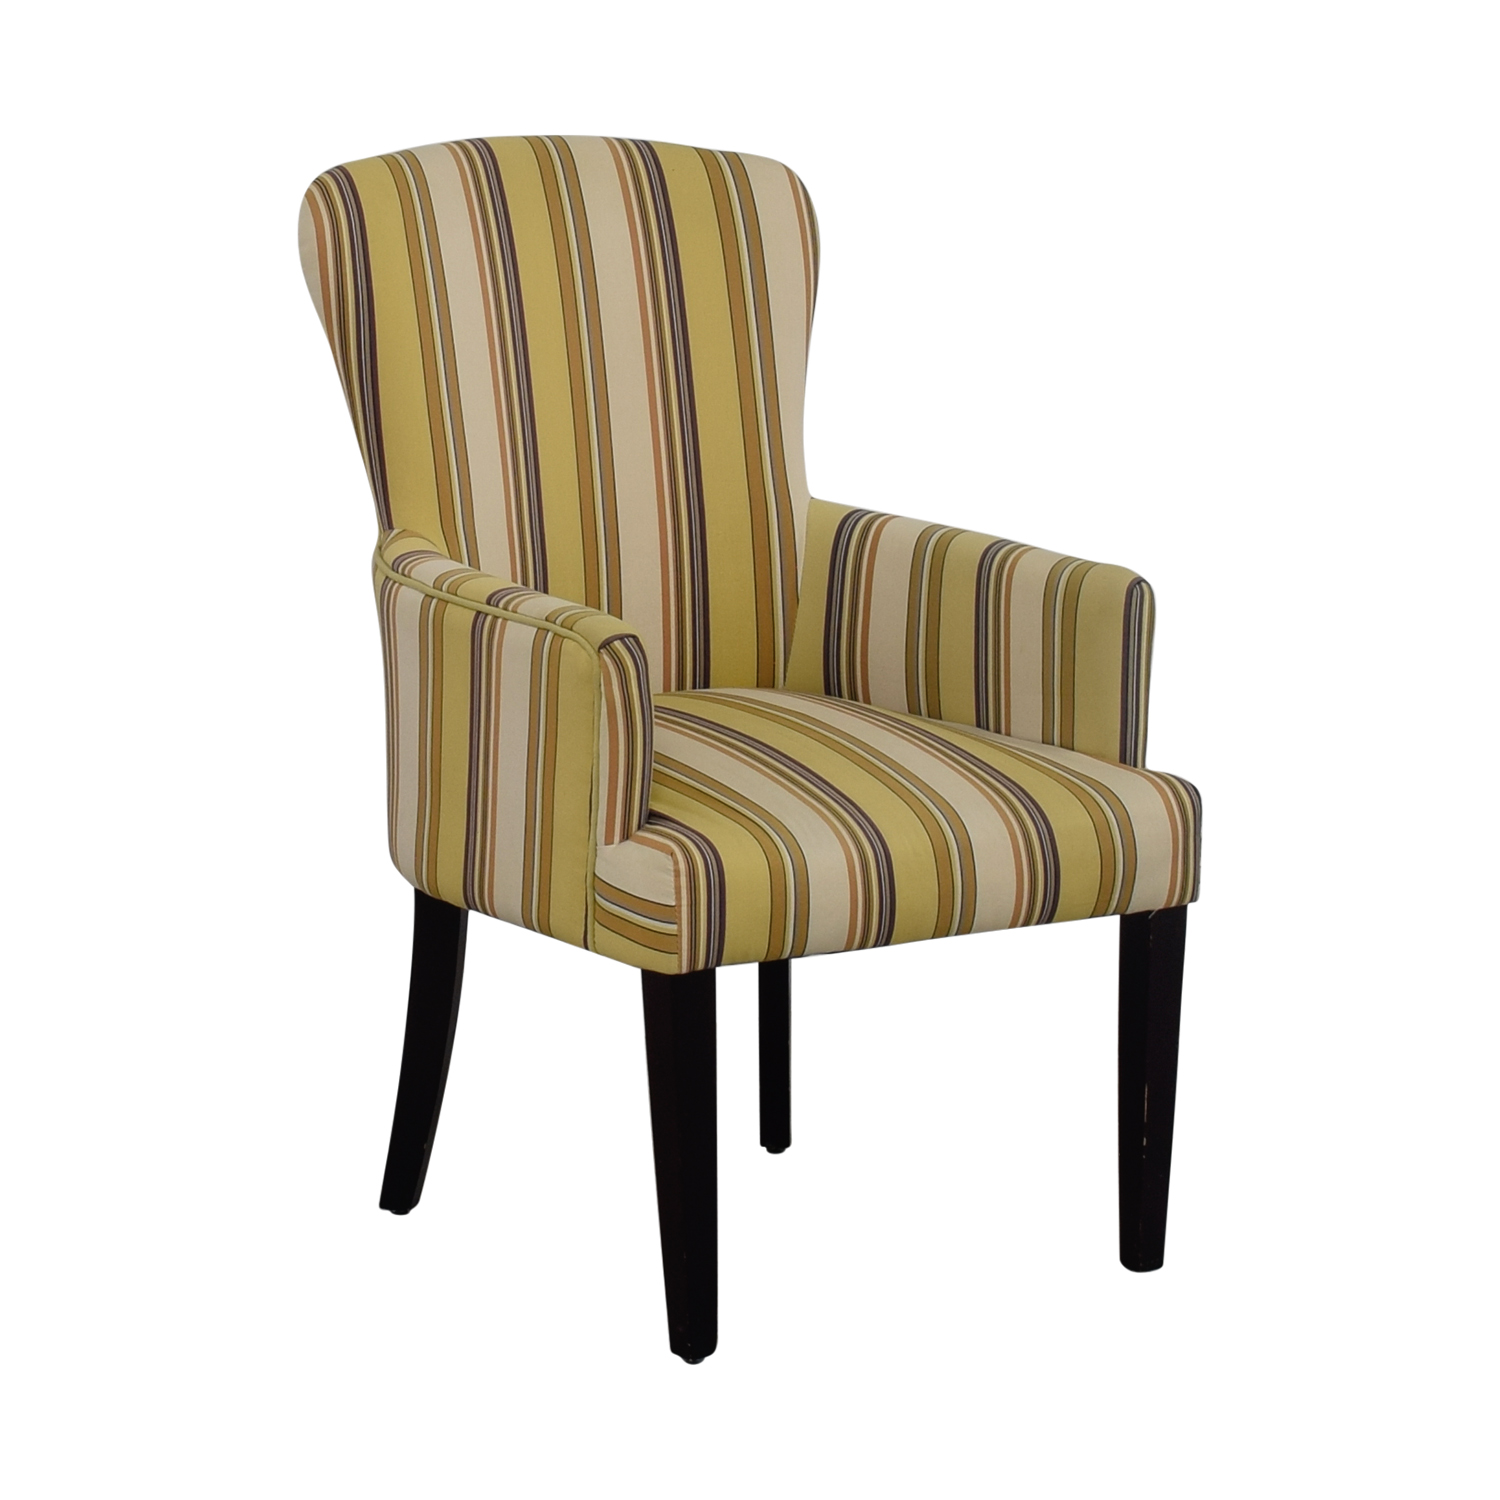 Multi Colored Accent Chairs 49 Off World Market World Market Multi Yellow Striped